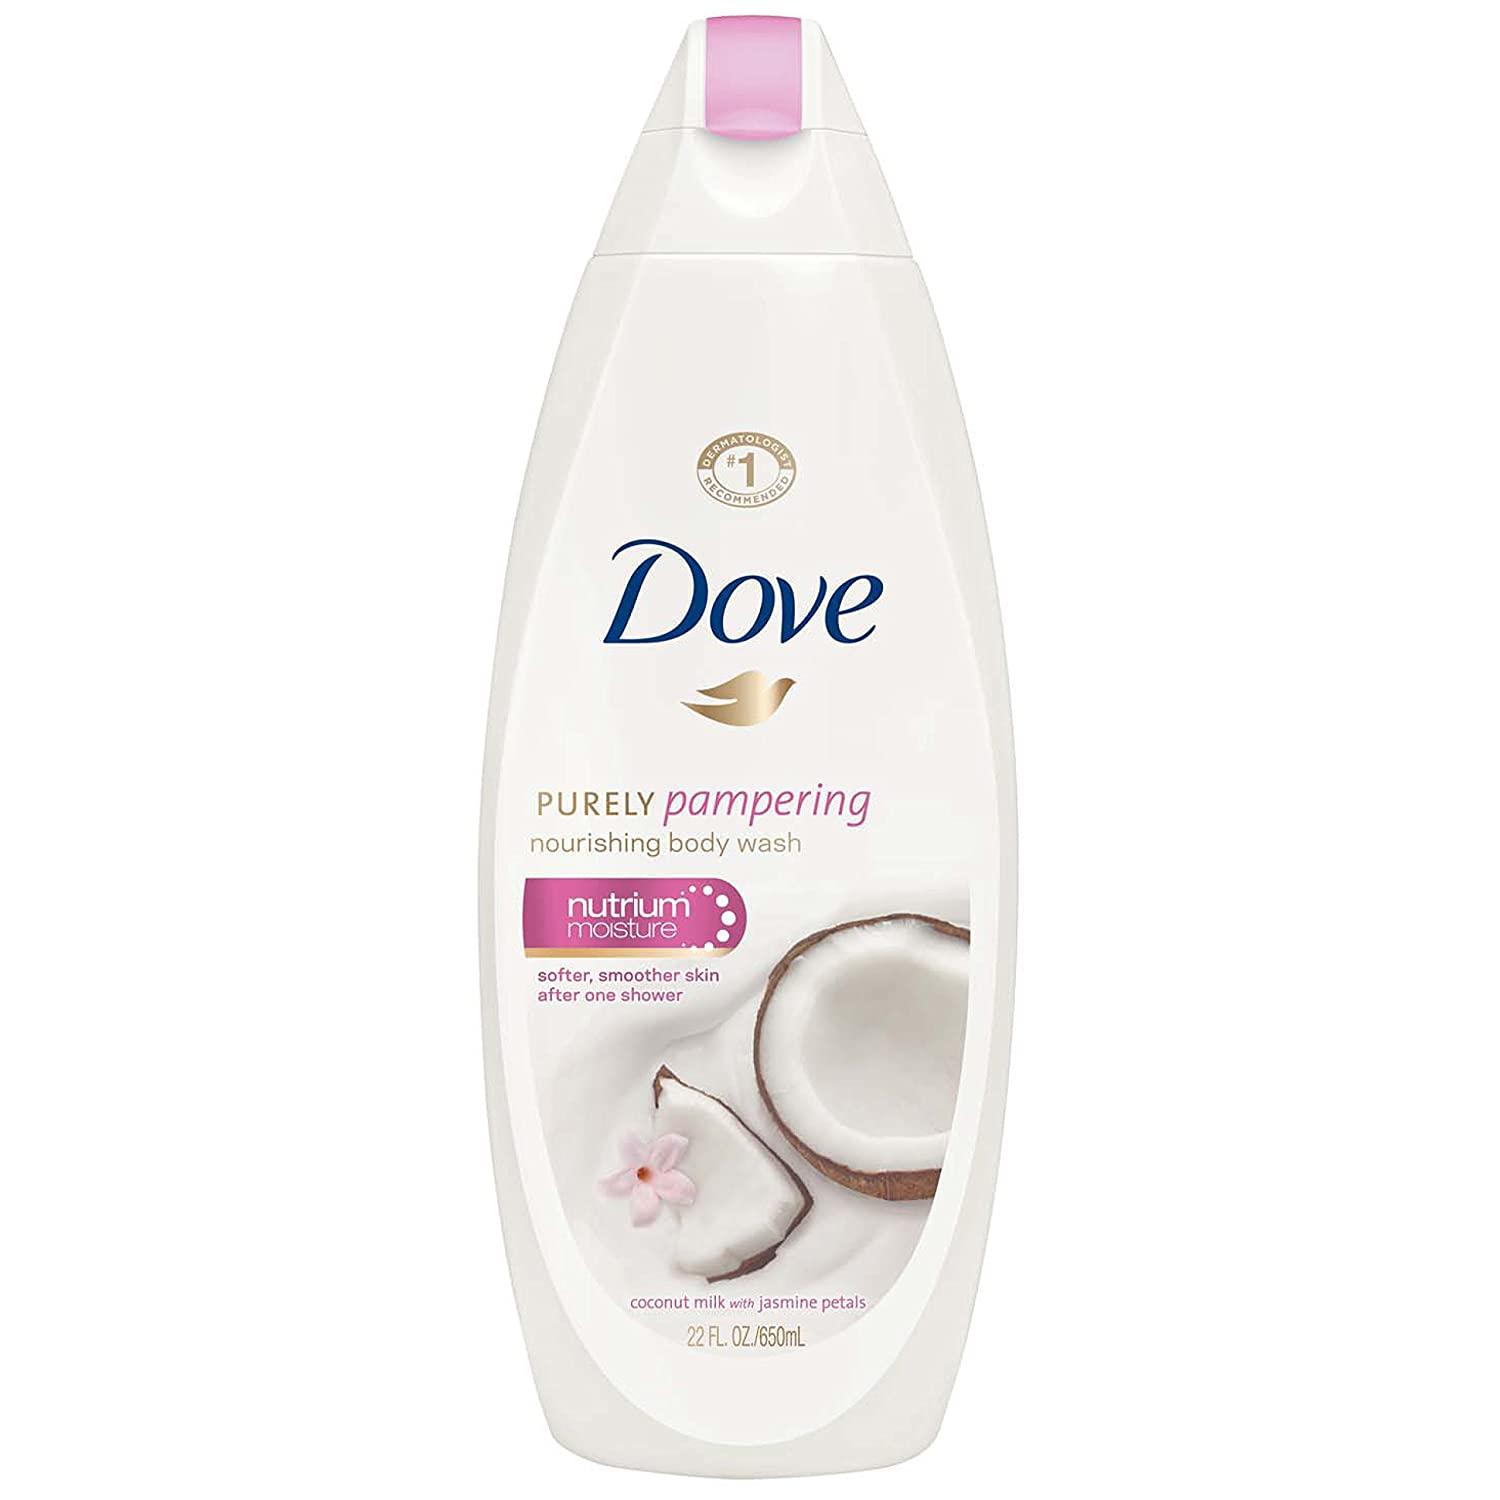 Amazon Com Dove Purely Pampering Body Wash Coconut Milk With Jasmine Petals 22 Oz Pack Of 2 Bath And Shower Gels Beauty